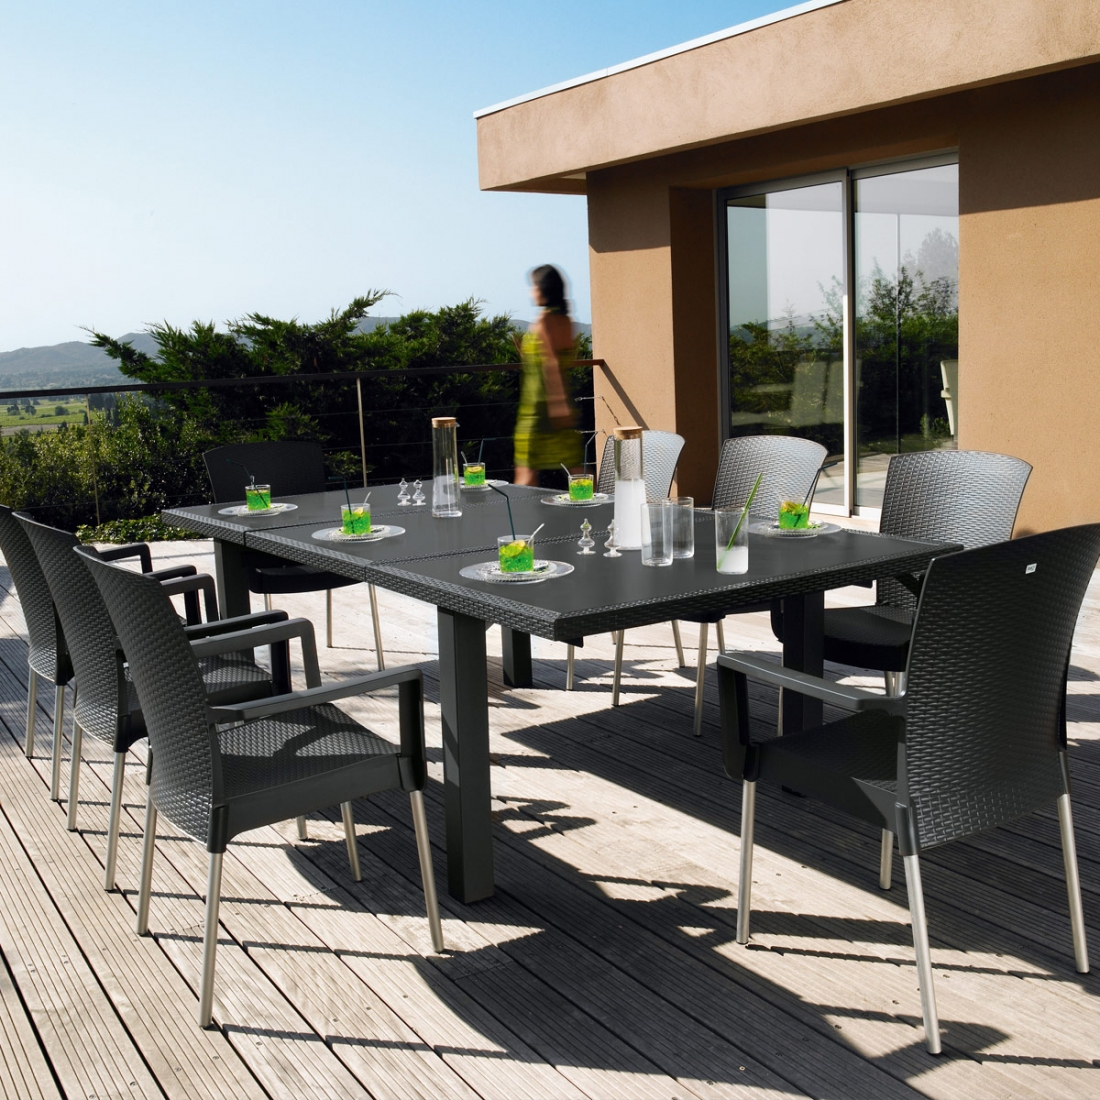 Salon de jardin de repas ineo design grosfillex for Salon jardin design